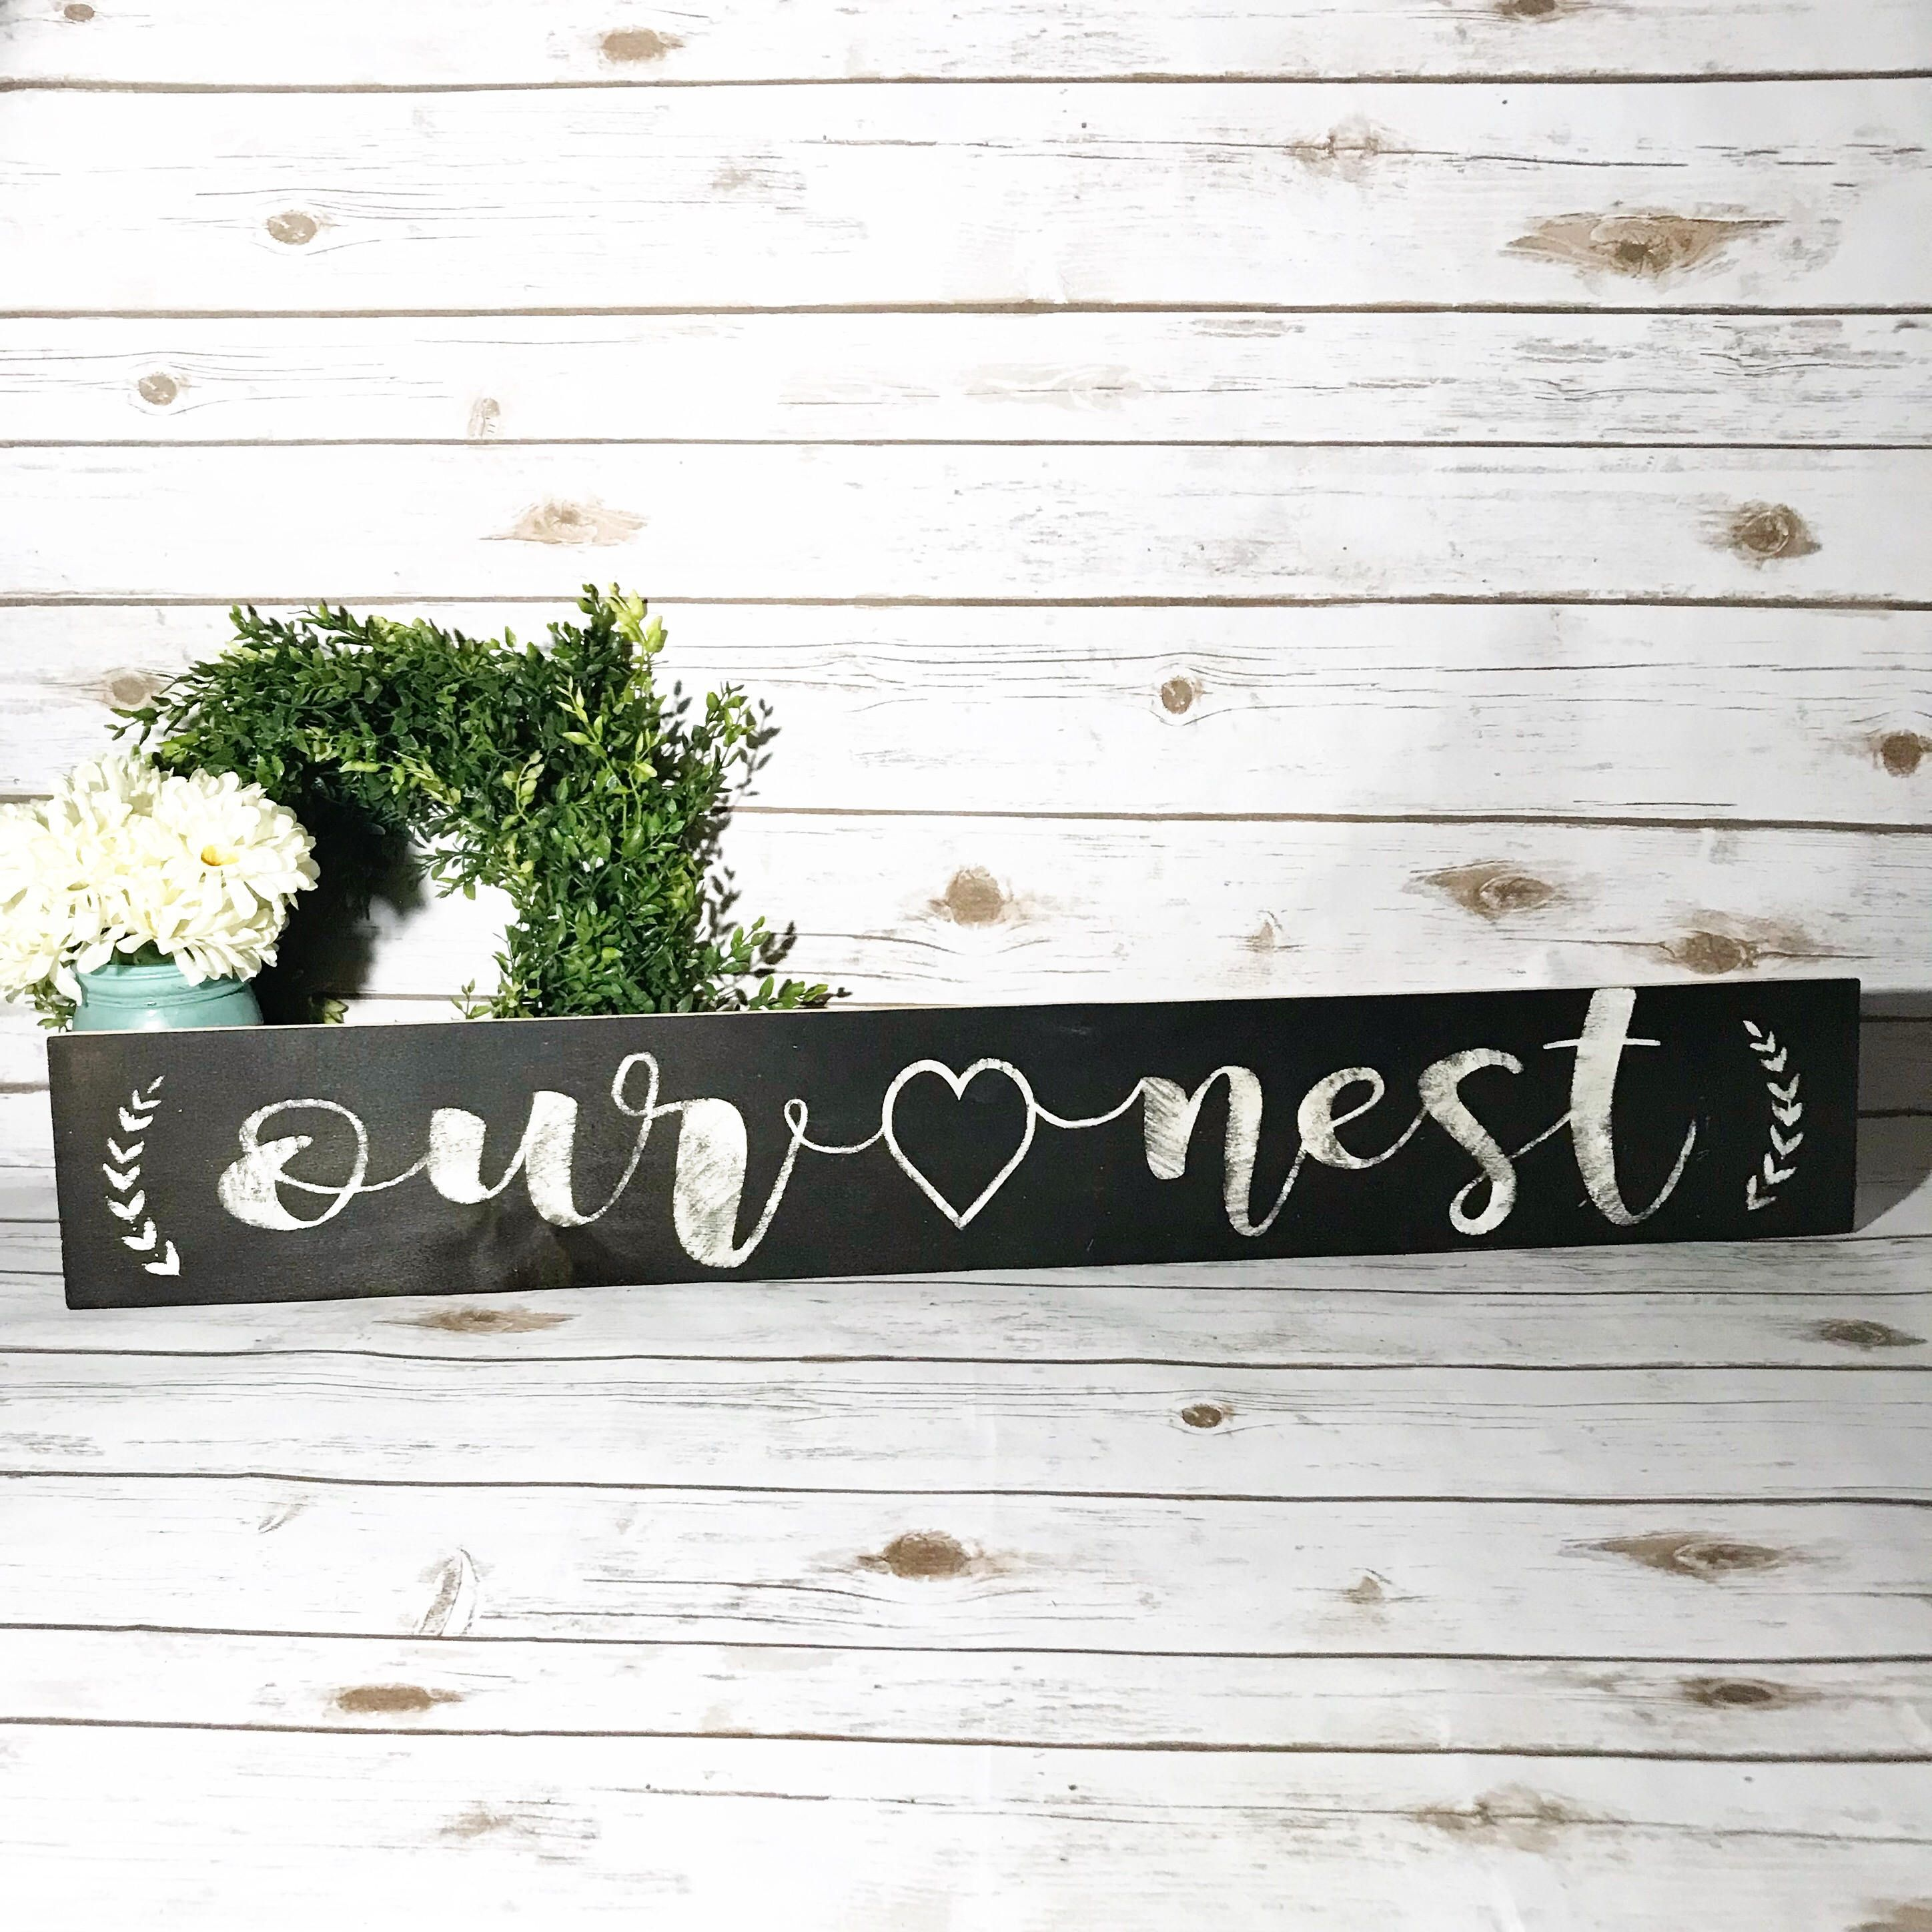 Our Nest Wood Sign / Custom Wood Sign / Rustic Wood Signs ...